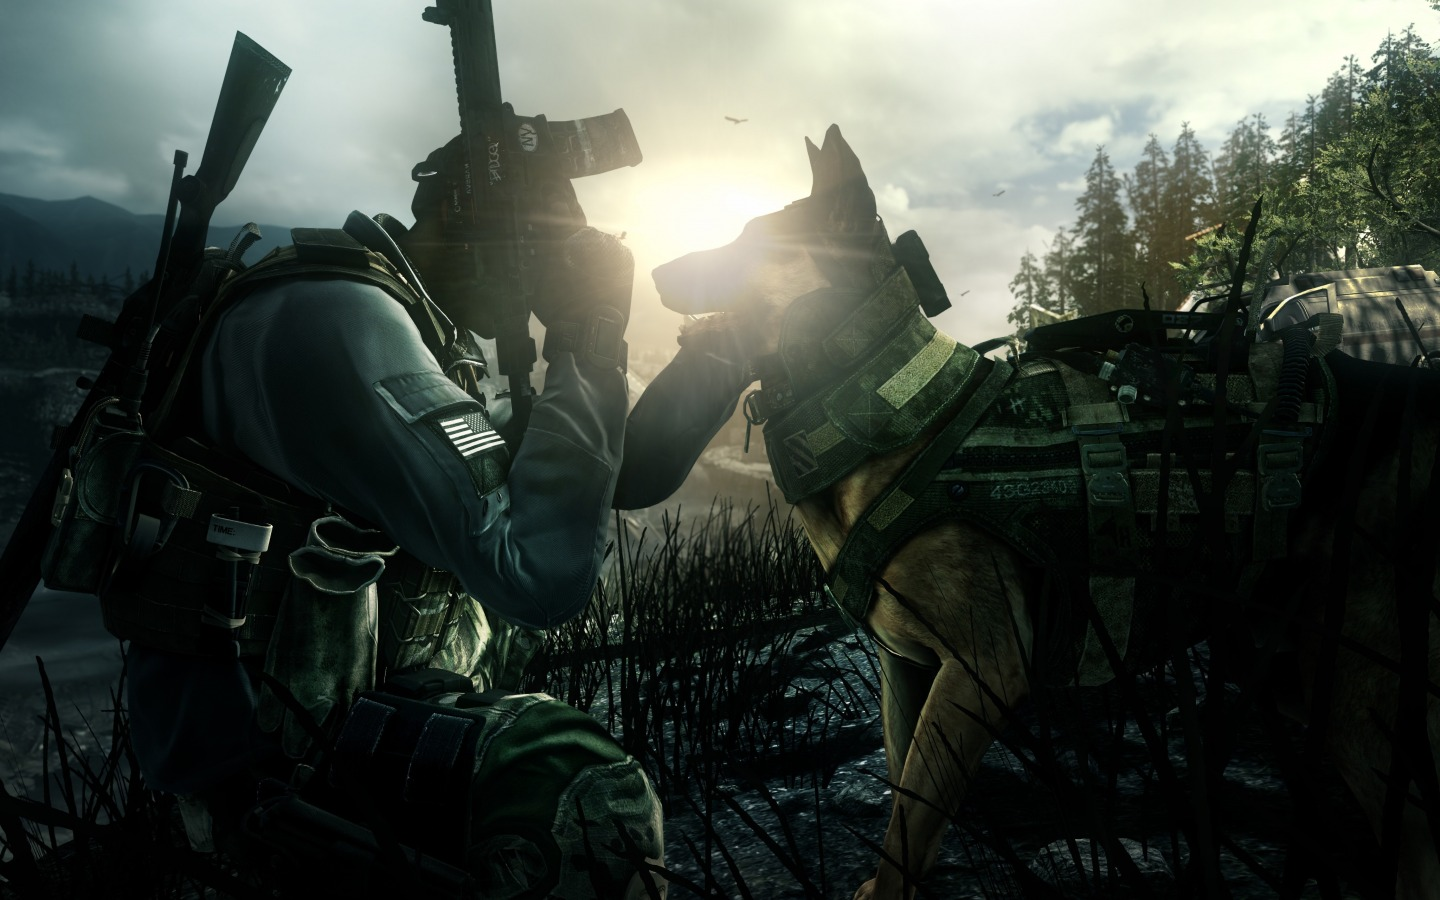 vegetation - Call of Duty: Ghosts Call of Duty: Ghosts, German shepherd, Собака